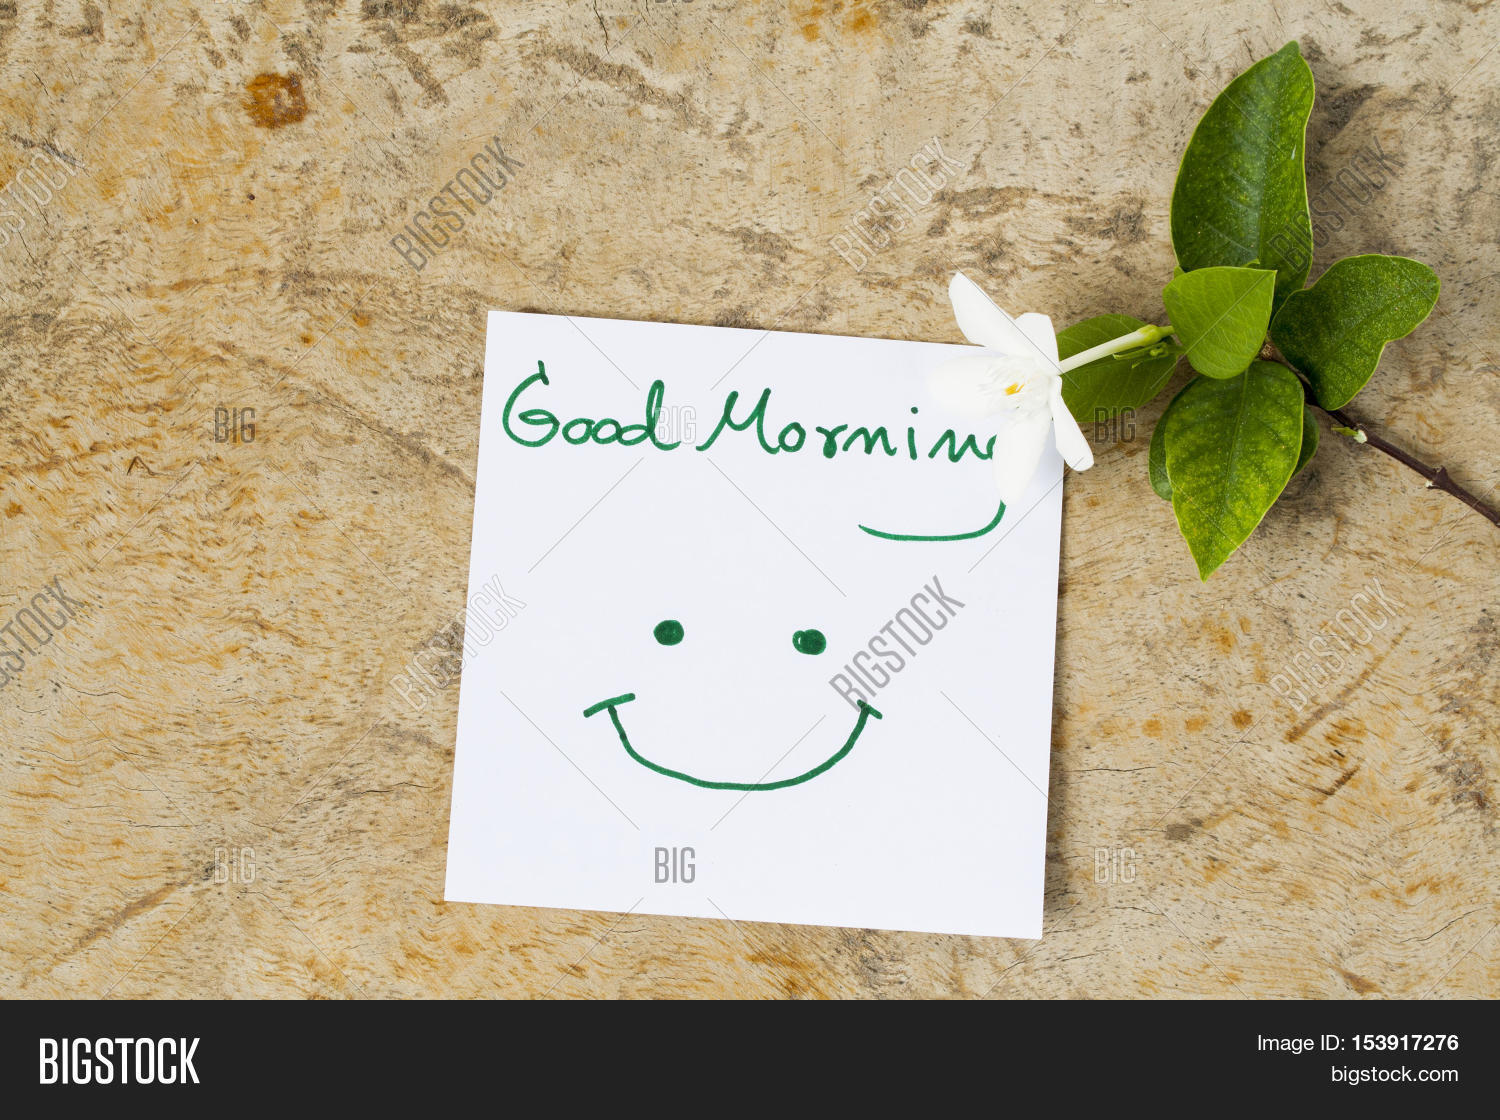 Good Morning Message Image Photo Free Trial Bigstock